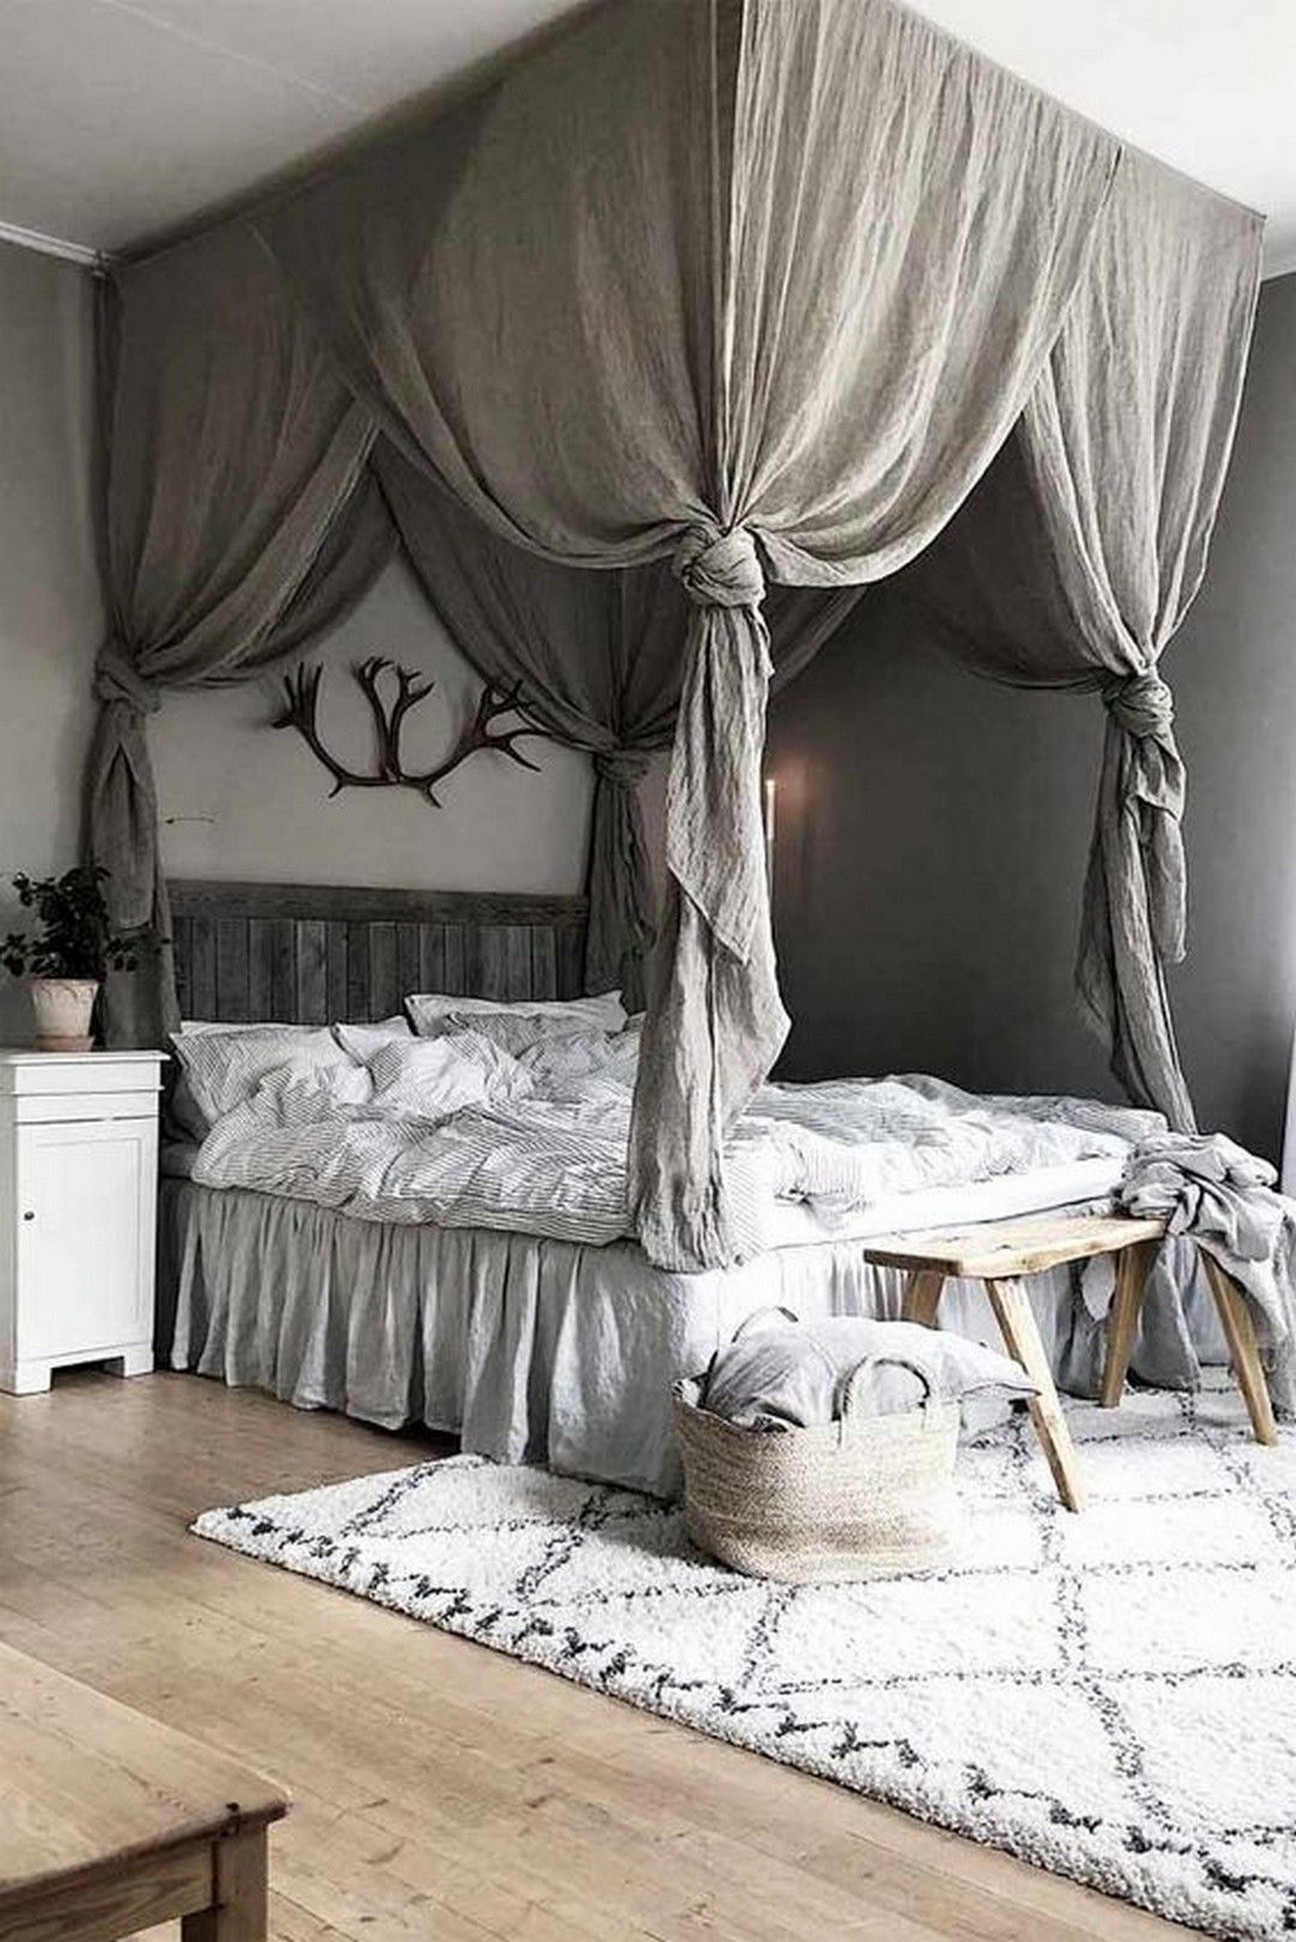 64 Rustic Bedroom Furniture How to Look Elegance Home Decor 58